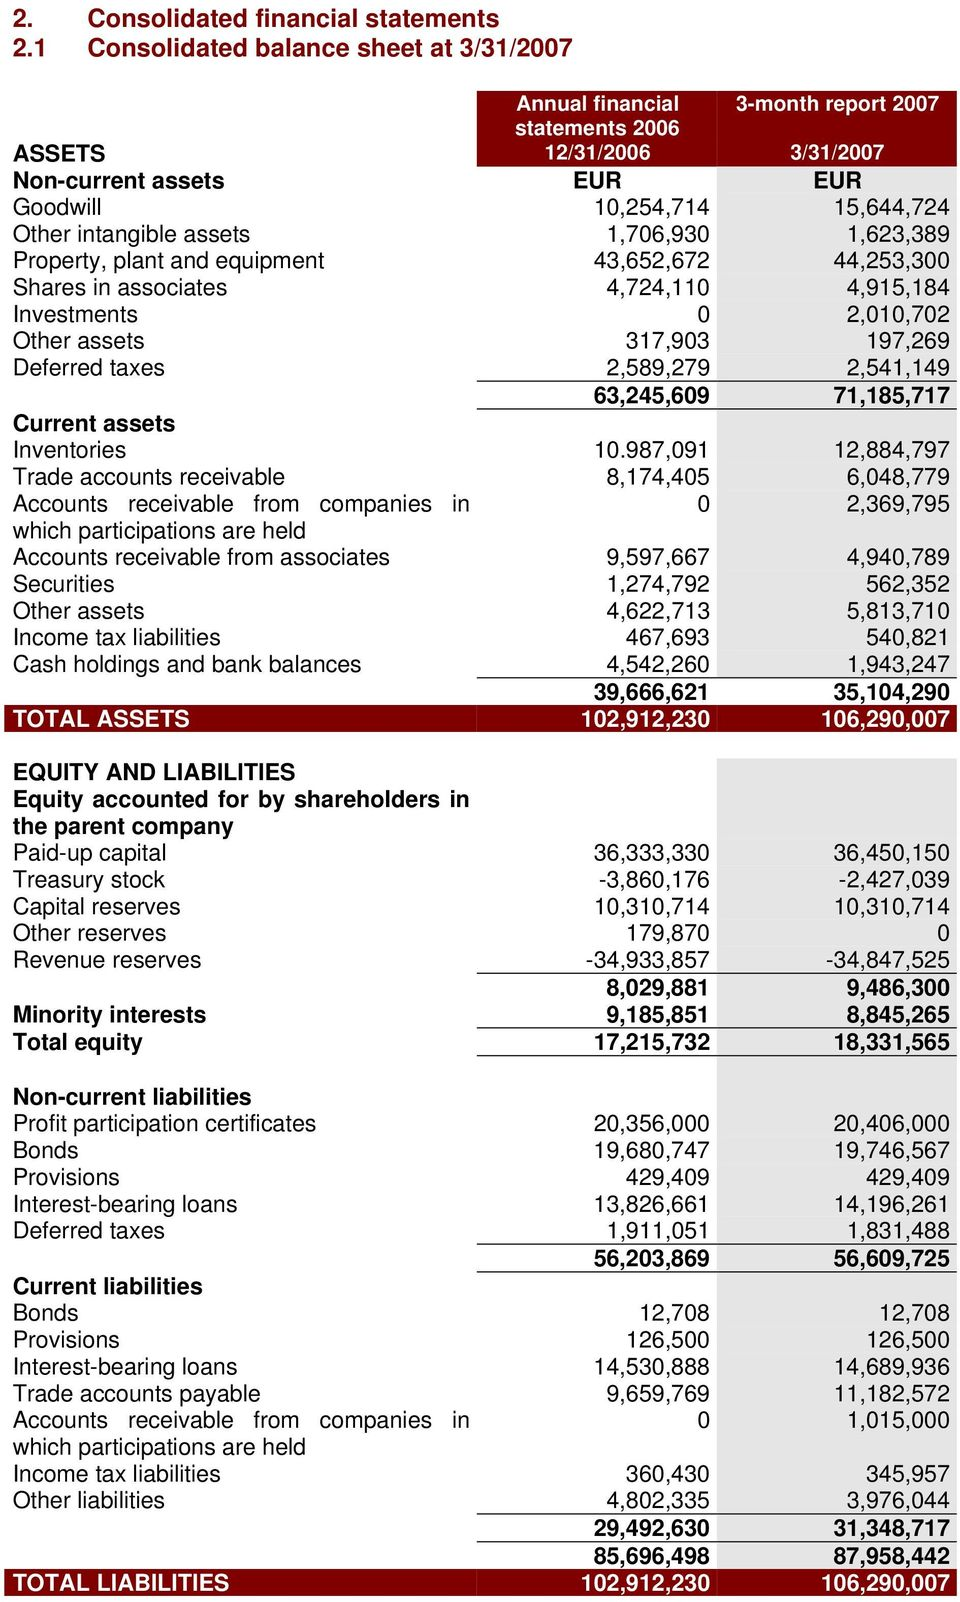 assets 1,706,930 1,623,389 Property, plant and equipment 43,652,672 44,253,300 Shares in associates 4,724,110 4,915,184 Investments 0 2,010,702 Other assets 317,903 197,269 Deferred taxes 2,589,279